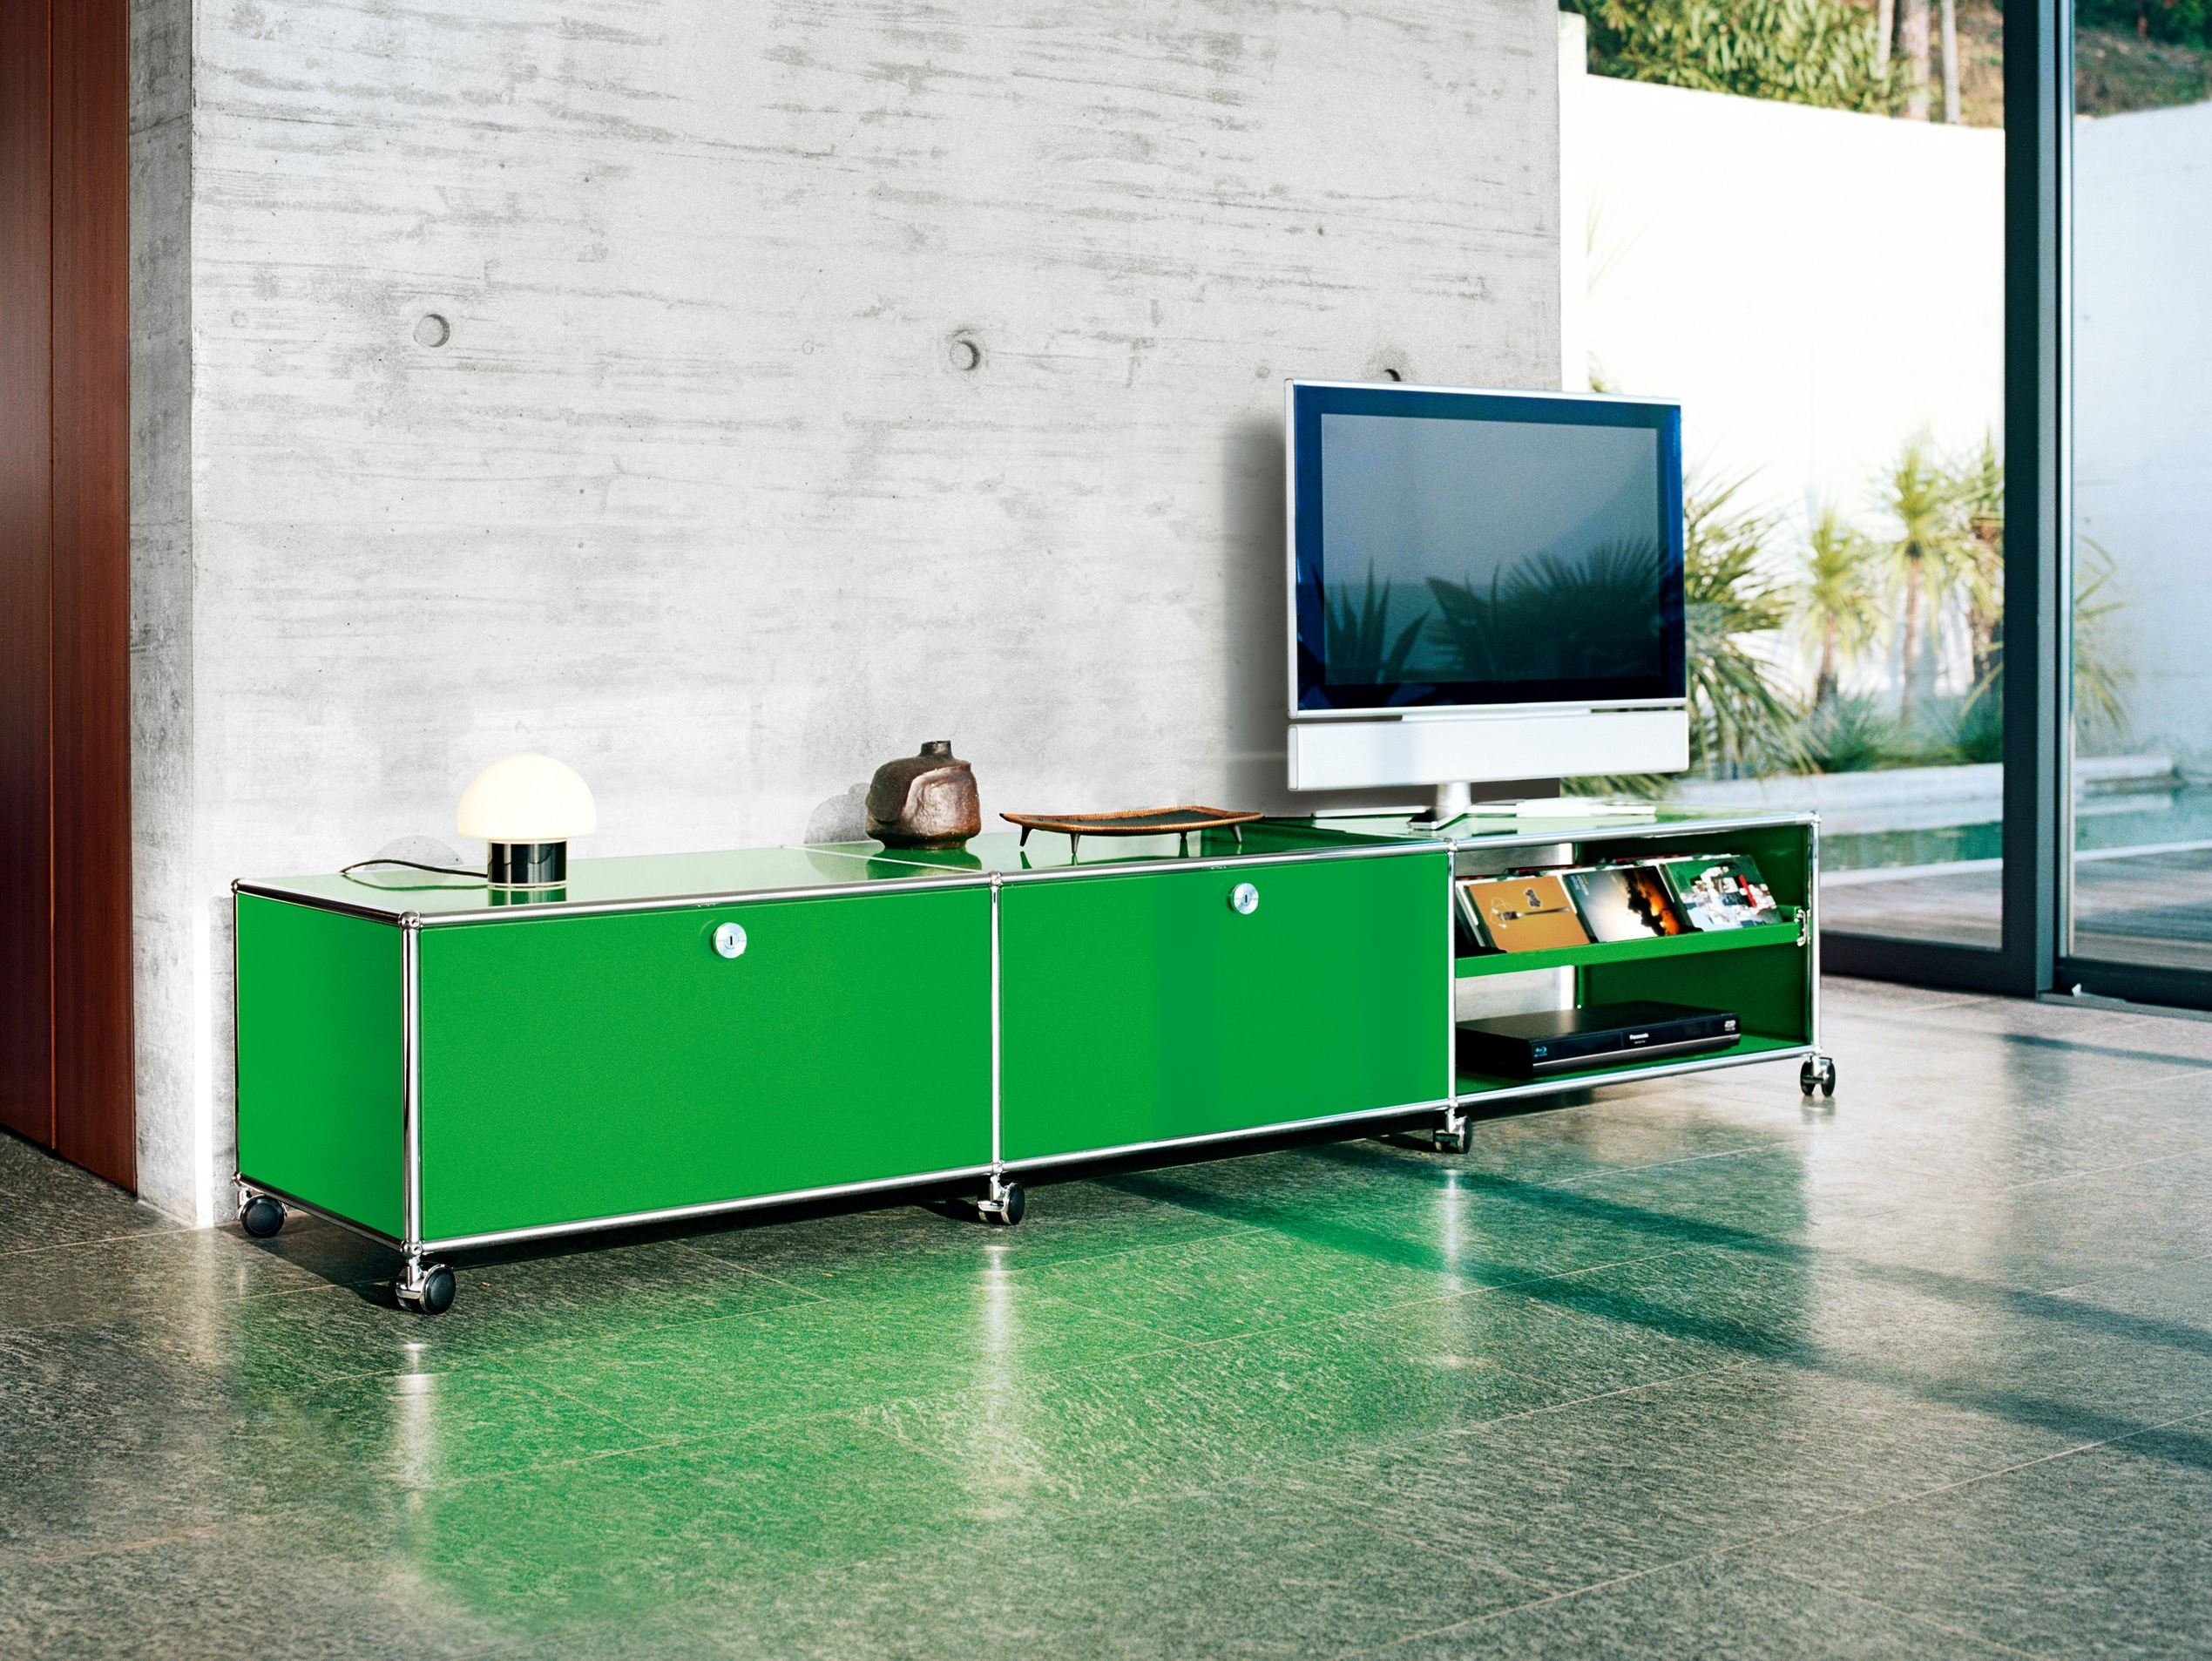 usm haller lowboard as media unit sideboard by usm modular. Black Bedroom Furniture Sets. Home Design Ideas